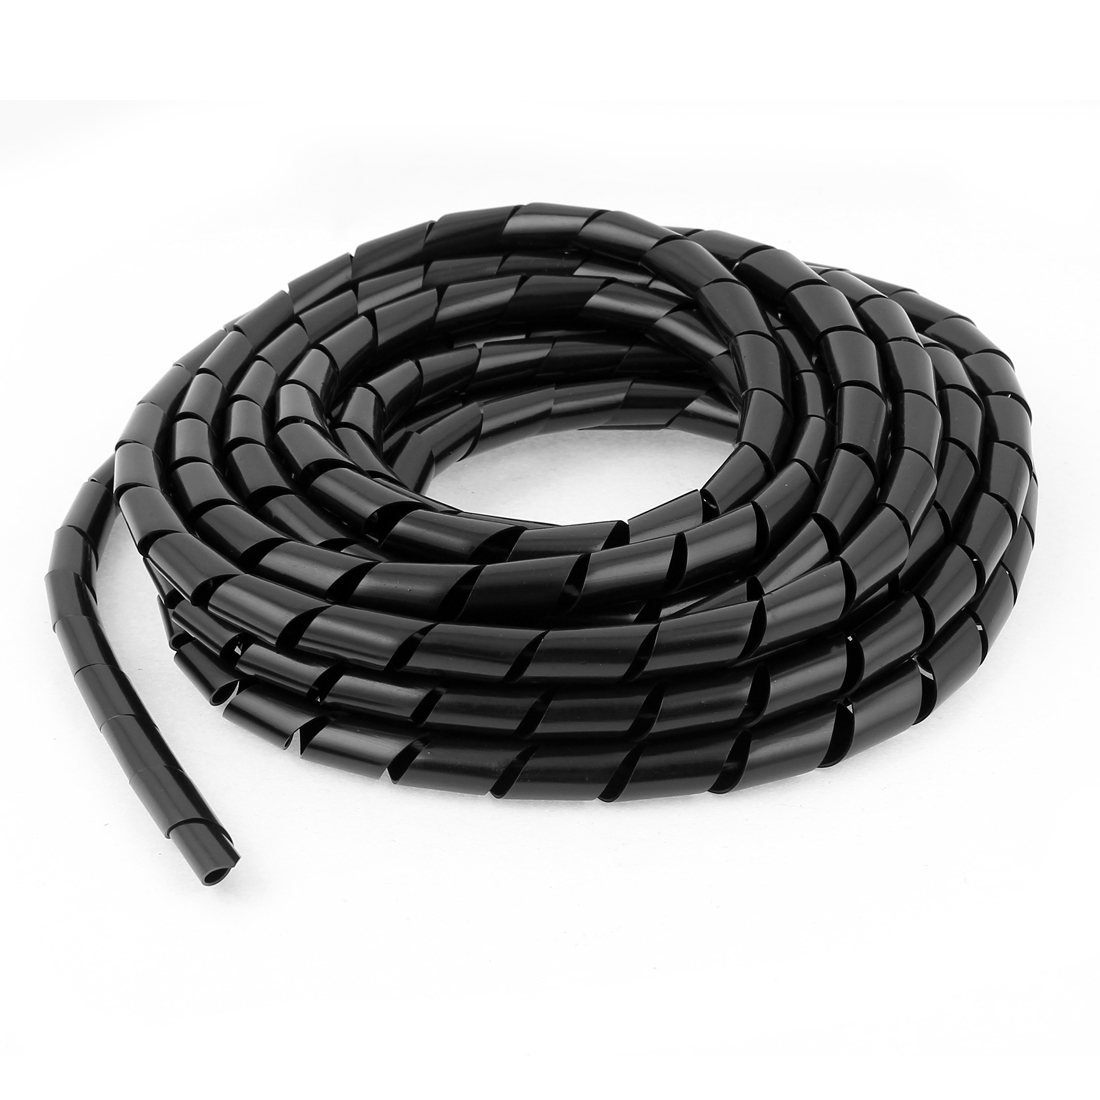 PC Cinema TV Cable Wire Tidy Wrap Organizer Spiral Wrapping Band 12mm 6.5M